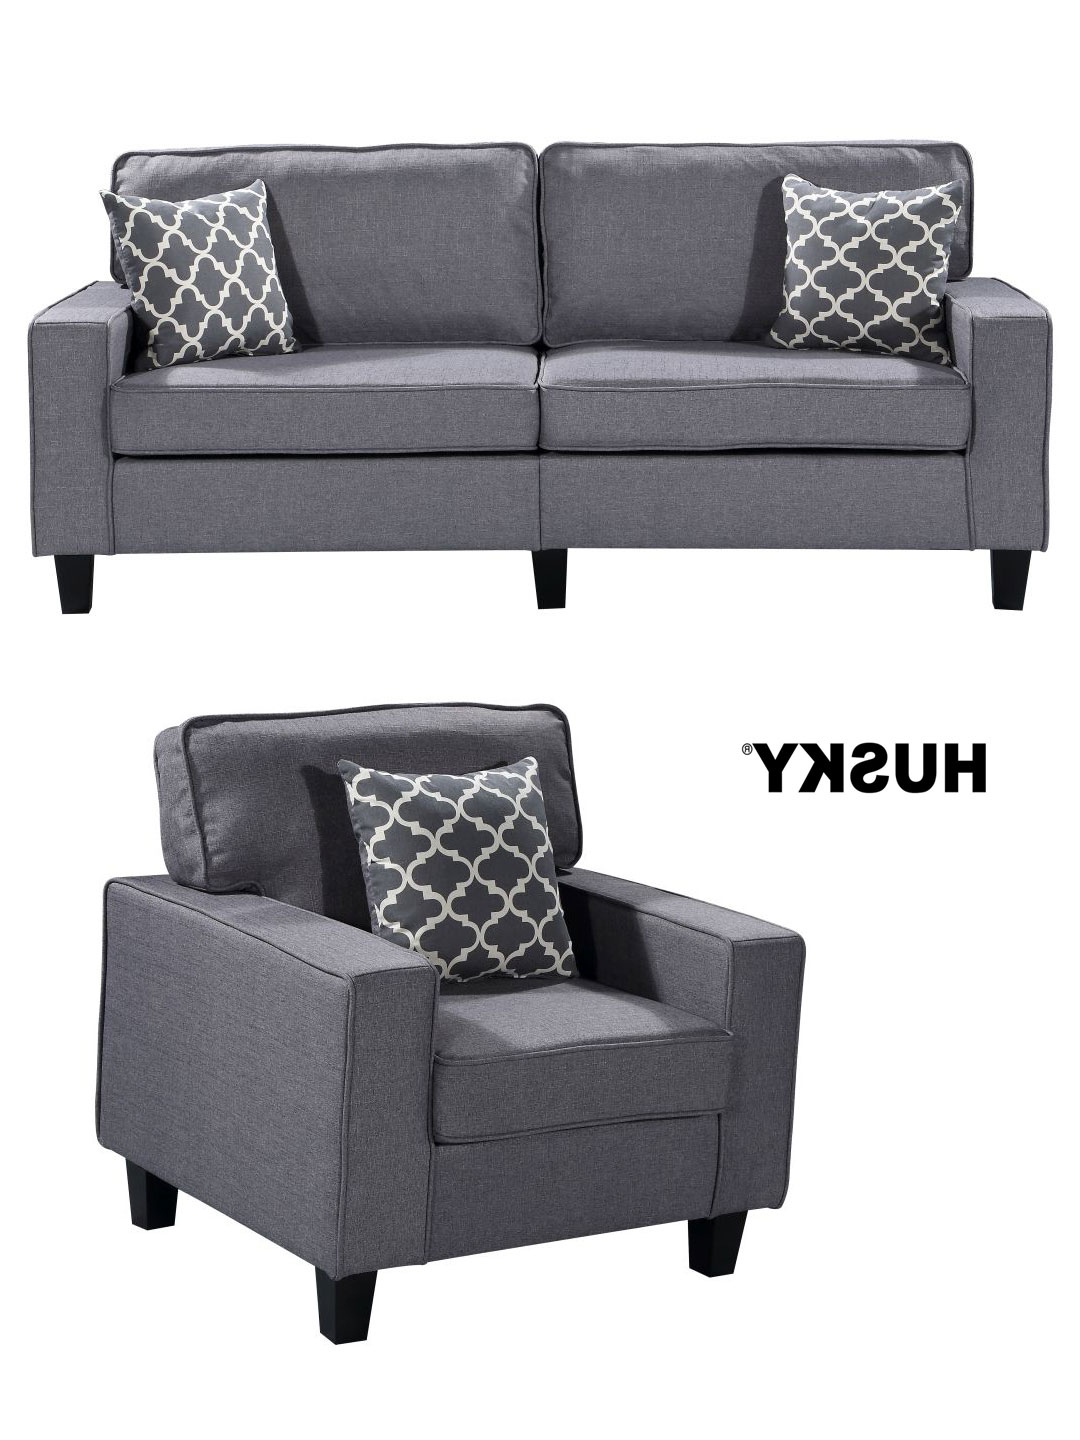 Sofa And Chair Set For Best And Newest Zara 2 Pc Sofa And Chair Set – Gray – Husky® Furniture And Mattresses (Gallery 8 of 20)